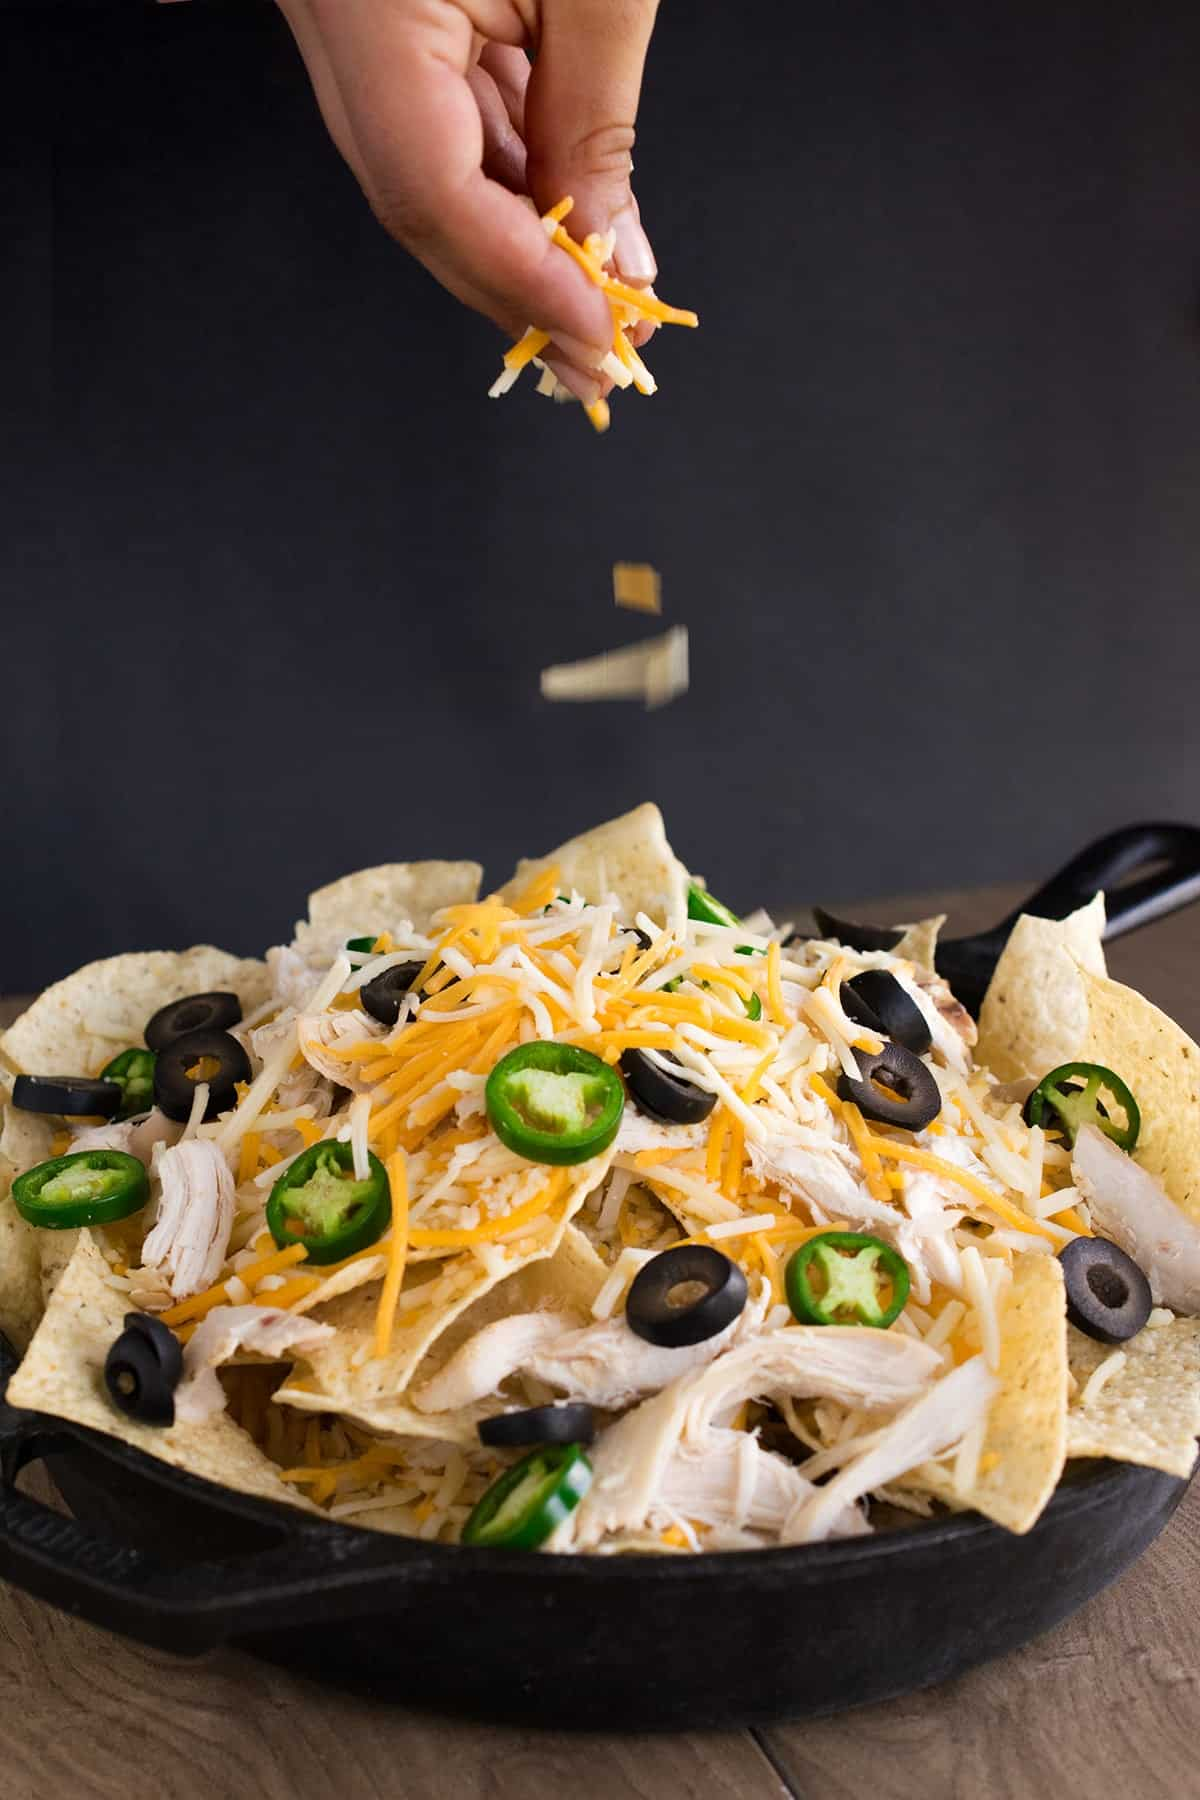 Hand sprinkling shredded cheese on mound of tortilla chips with chicken, jalapenos, and chicken in cast iron skillet.